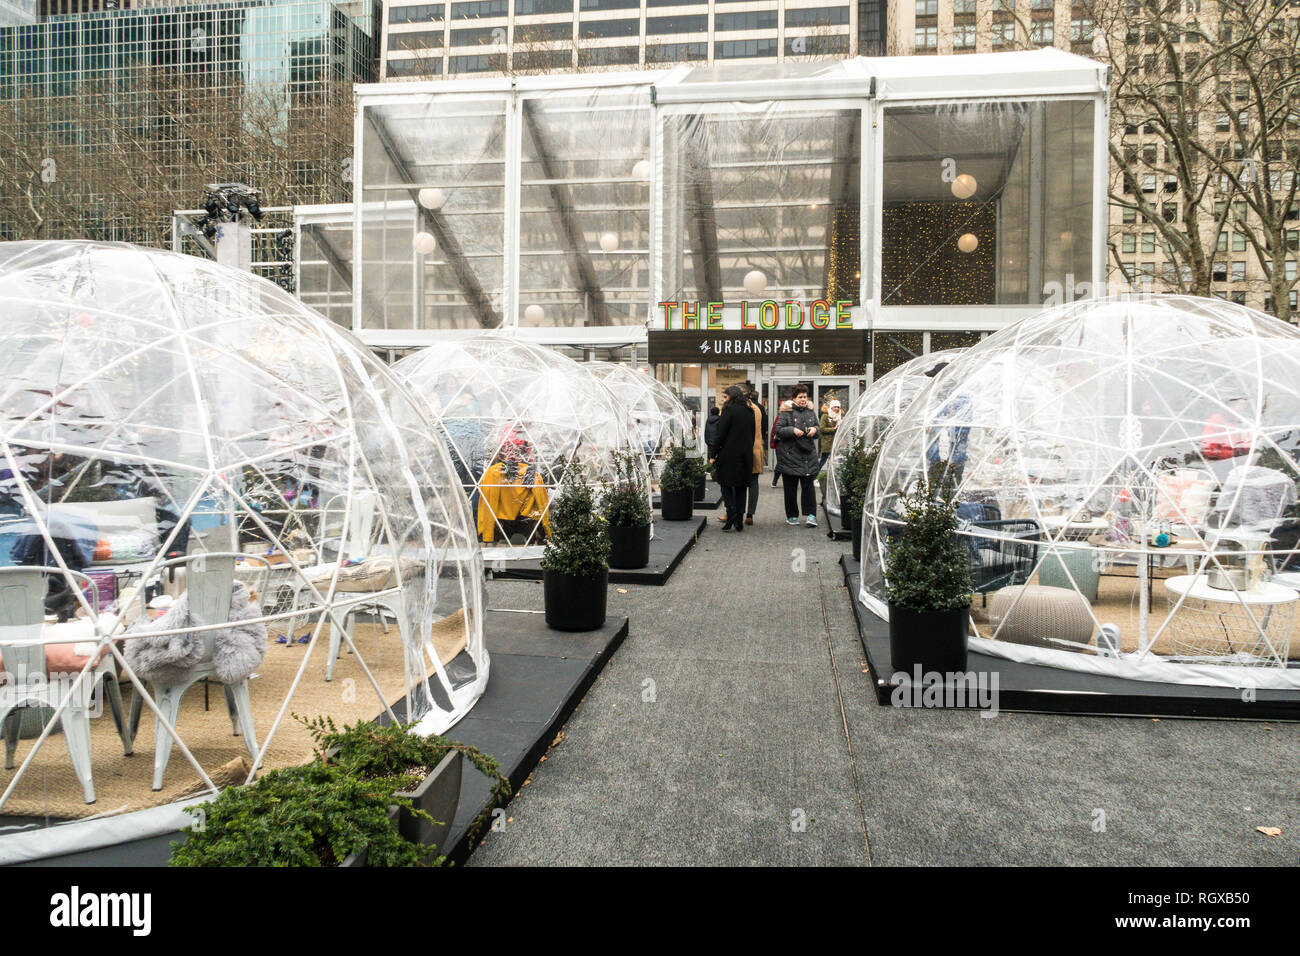 Frost Fest is a winter event in Bryant Park, New York City, USA - Stock Image